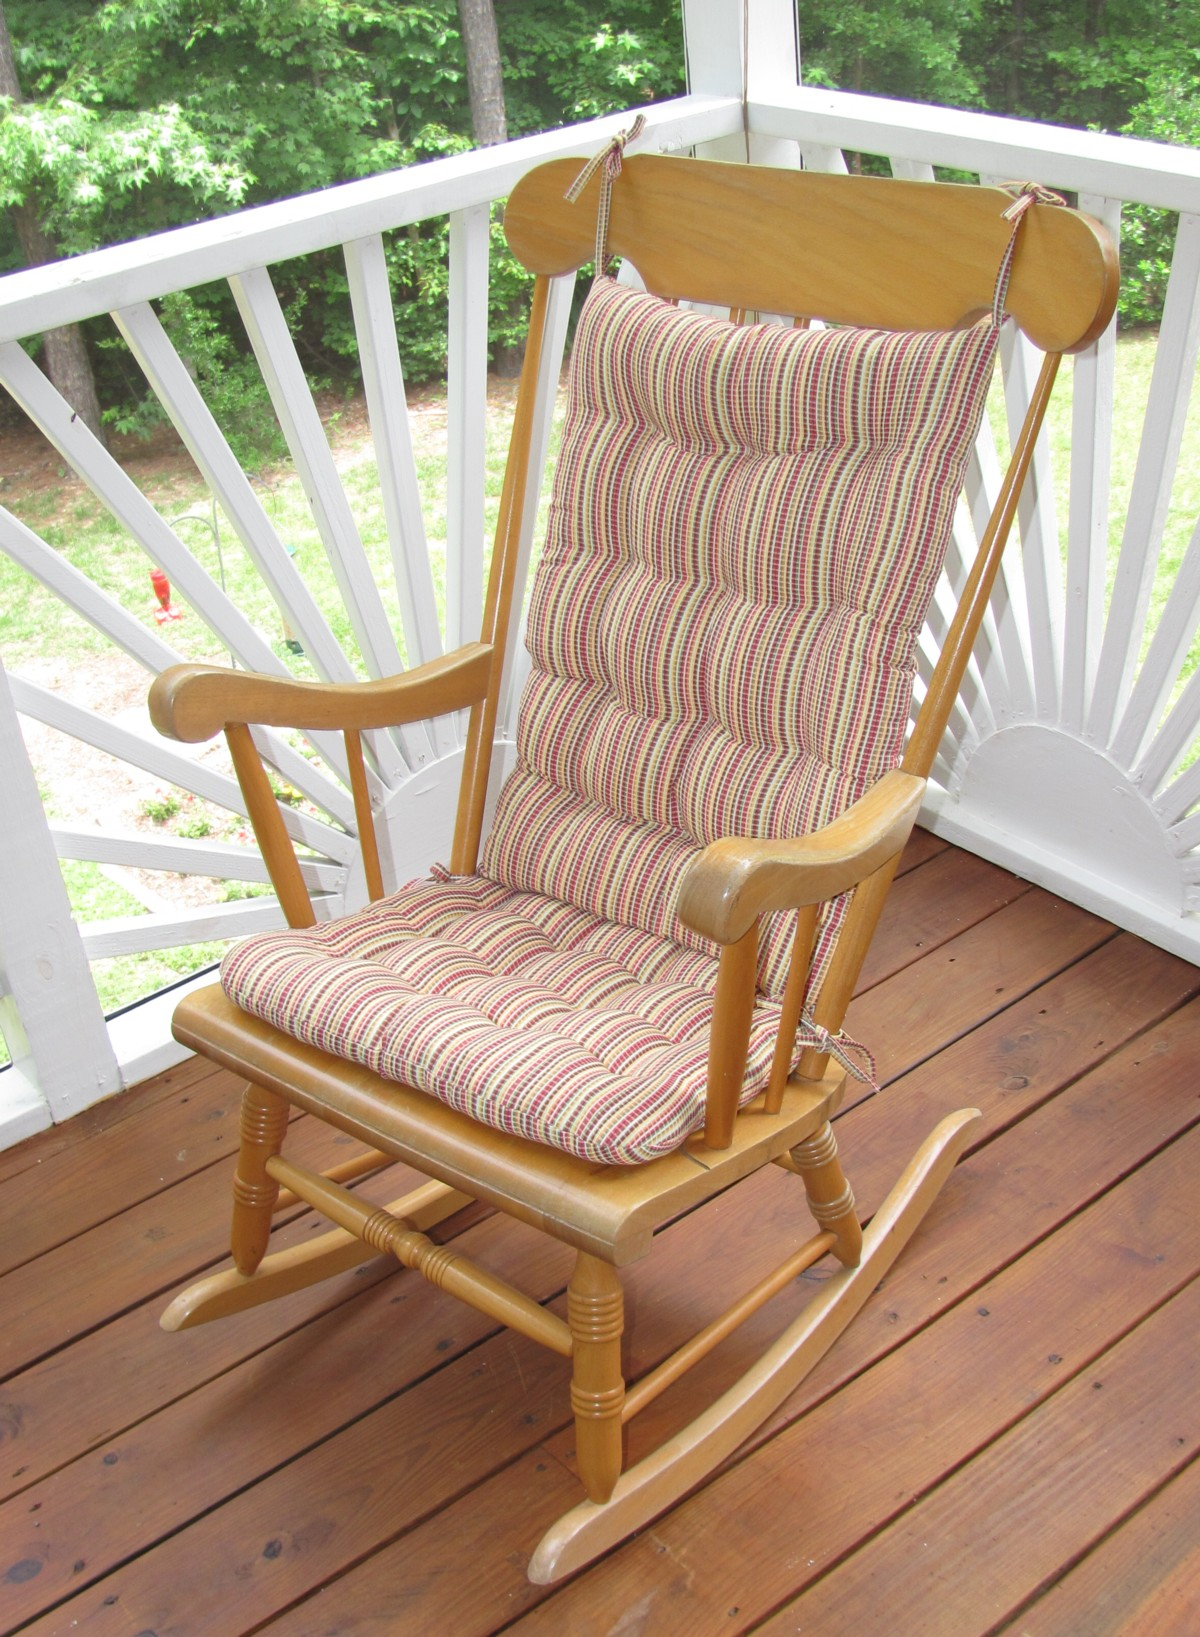 Magnificent Rocking Chair Cushion Sets And More Clearance Machost Co Dining Chair Design Ideas Machostcouk